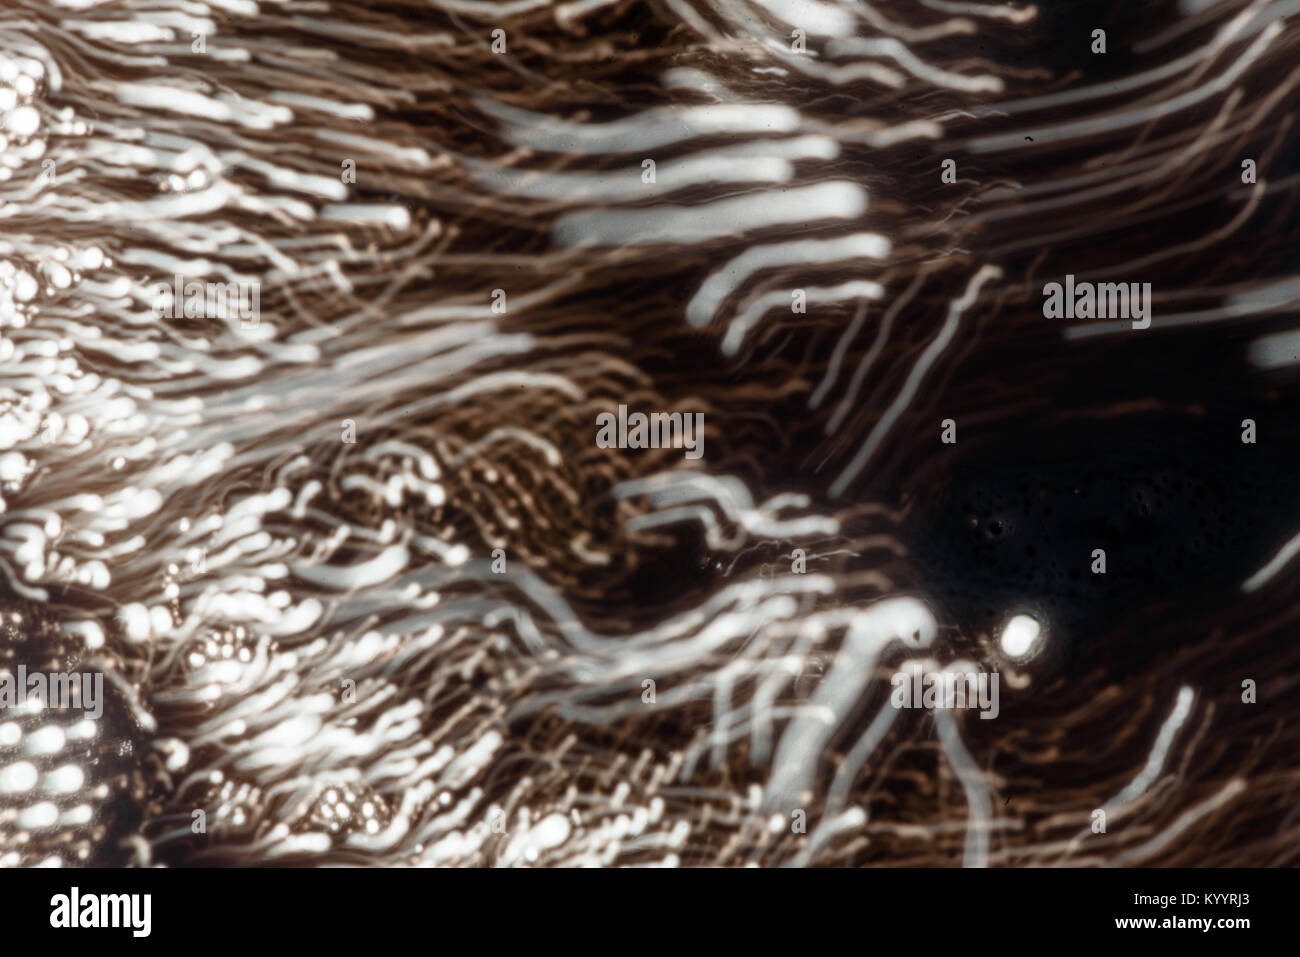 Intentional blur movement of fizzy soda bubbles moving though liquid water creating an abstract blurred image of - Stock Image